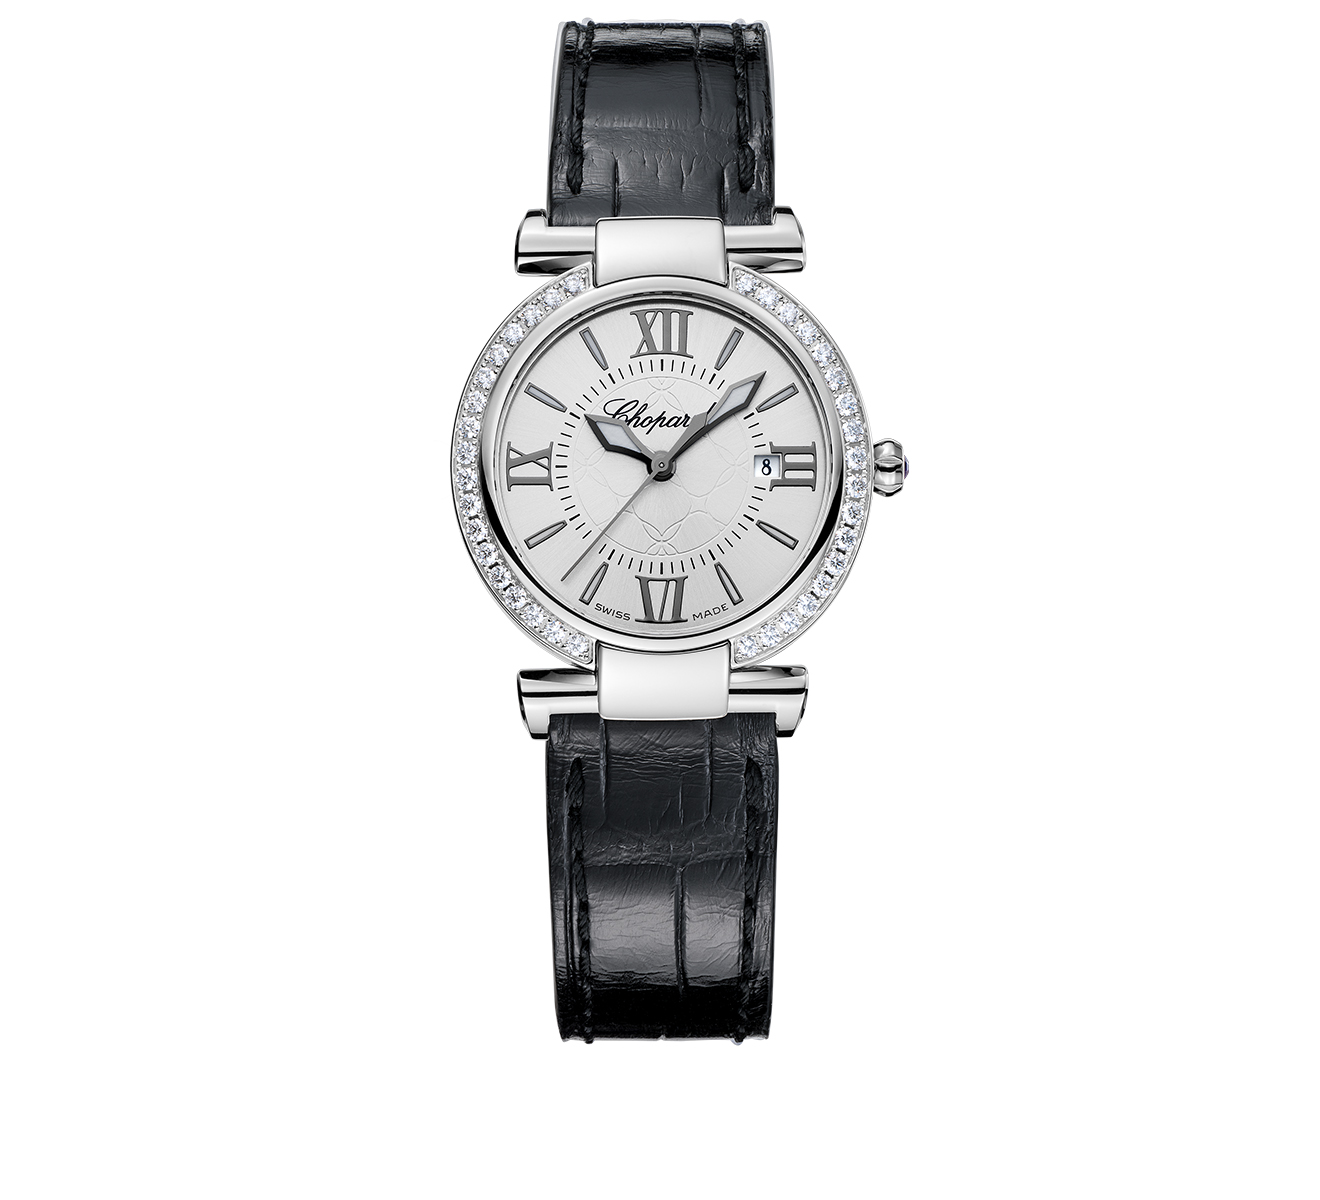 Часы Imperiale Chopard Imperiale 388541-3003 - фото 1 – Mercury